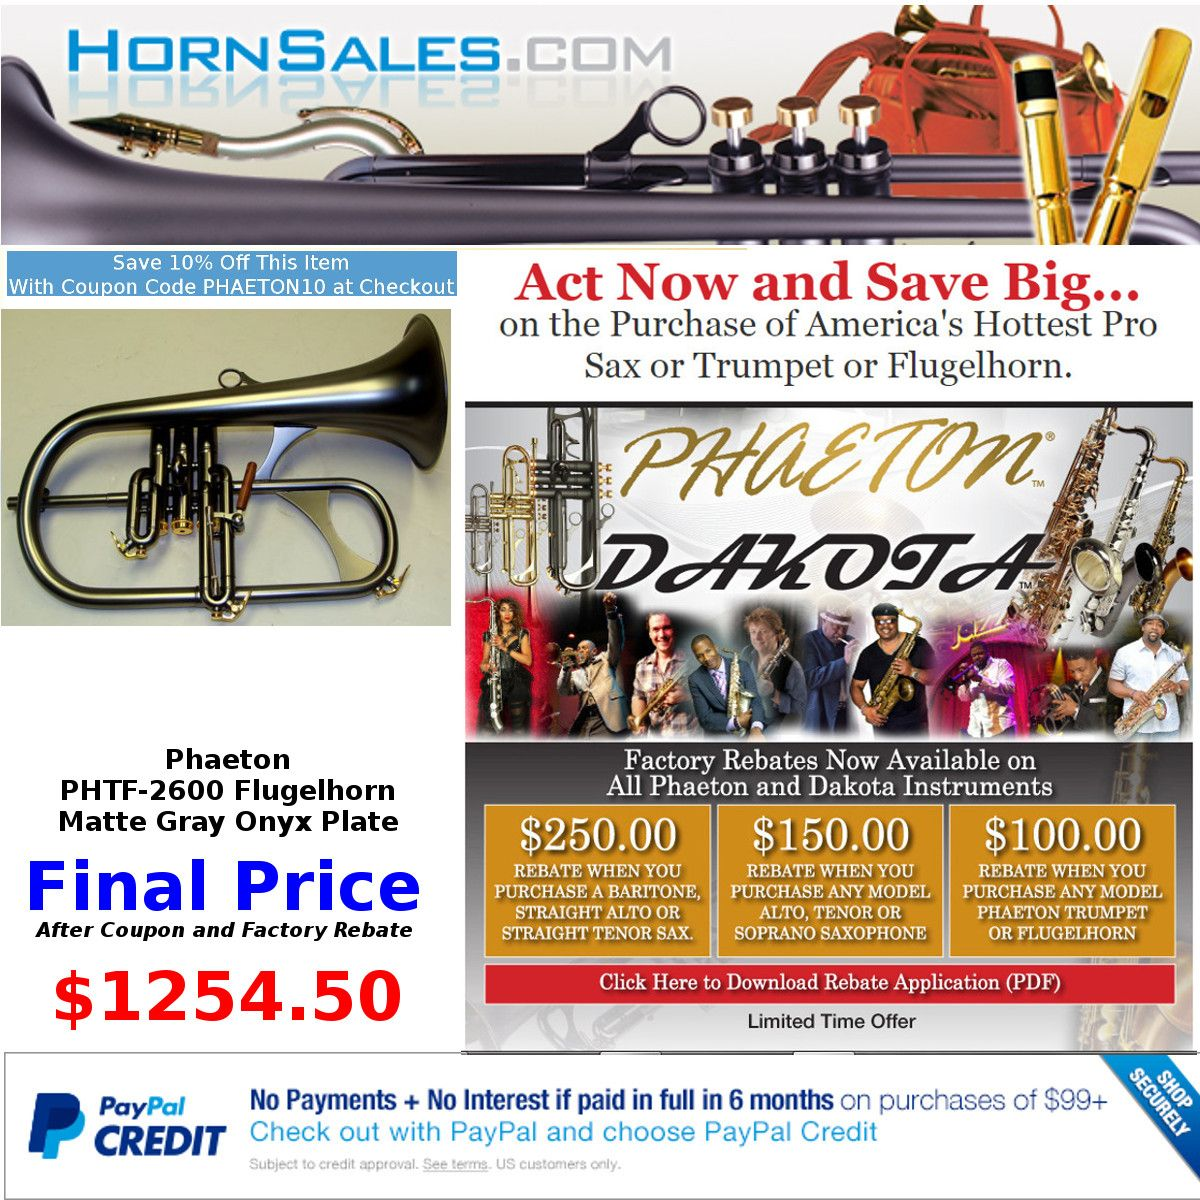 SAVE BIG! Get The Phaeton PHTF-2600 Professional Flugel Horn for our Lowest Price of teh year when you combine our Holiday Coupon and Factory Rebate.  Free Shipping in the CONUS. Plus Make No Payents and Pay No Interest if Paid in Full in 6 Months using PayPal Credit...ONLY at Hornsales.com http://hornsales.com/store/p/54-Phaeton-PHTF-2600-Black-Onyx-Plated-Professional-Flugelhorn.aspx